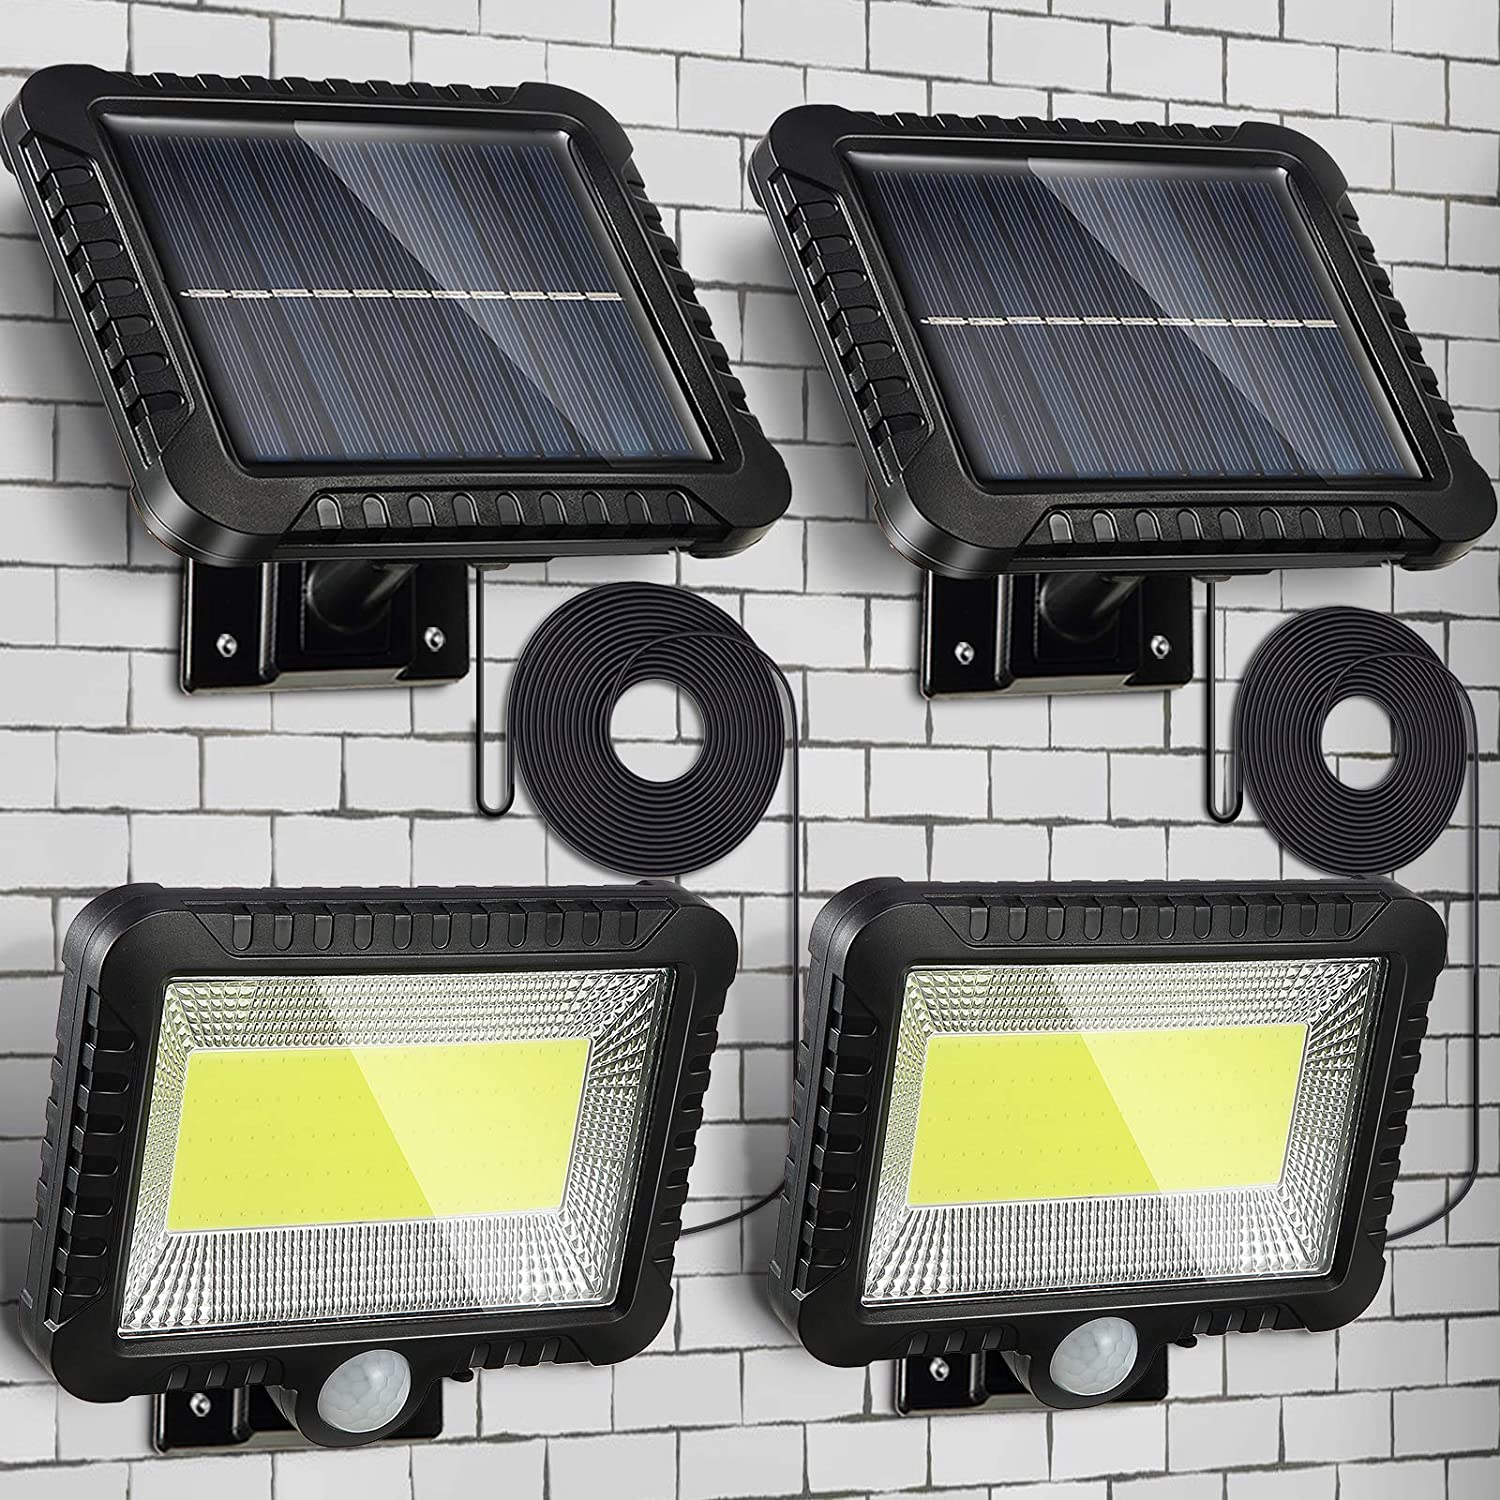 2pcs Solar Lights Outdoor, Waterproof Human Body Induction Solar Powered Wall Lamp 100 LED Spotlight, 5 m/ 16.4 ft Cord Easy-to-Install Security Lights with Adjustable Solar Panel for Garden Garage